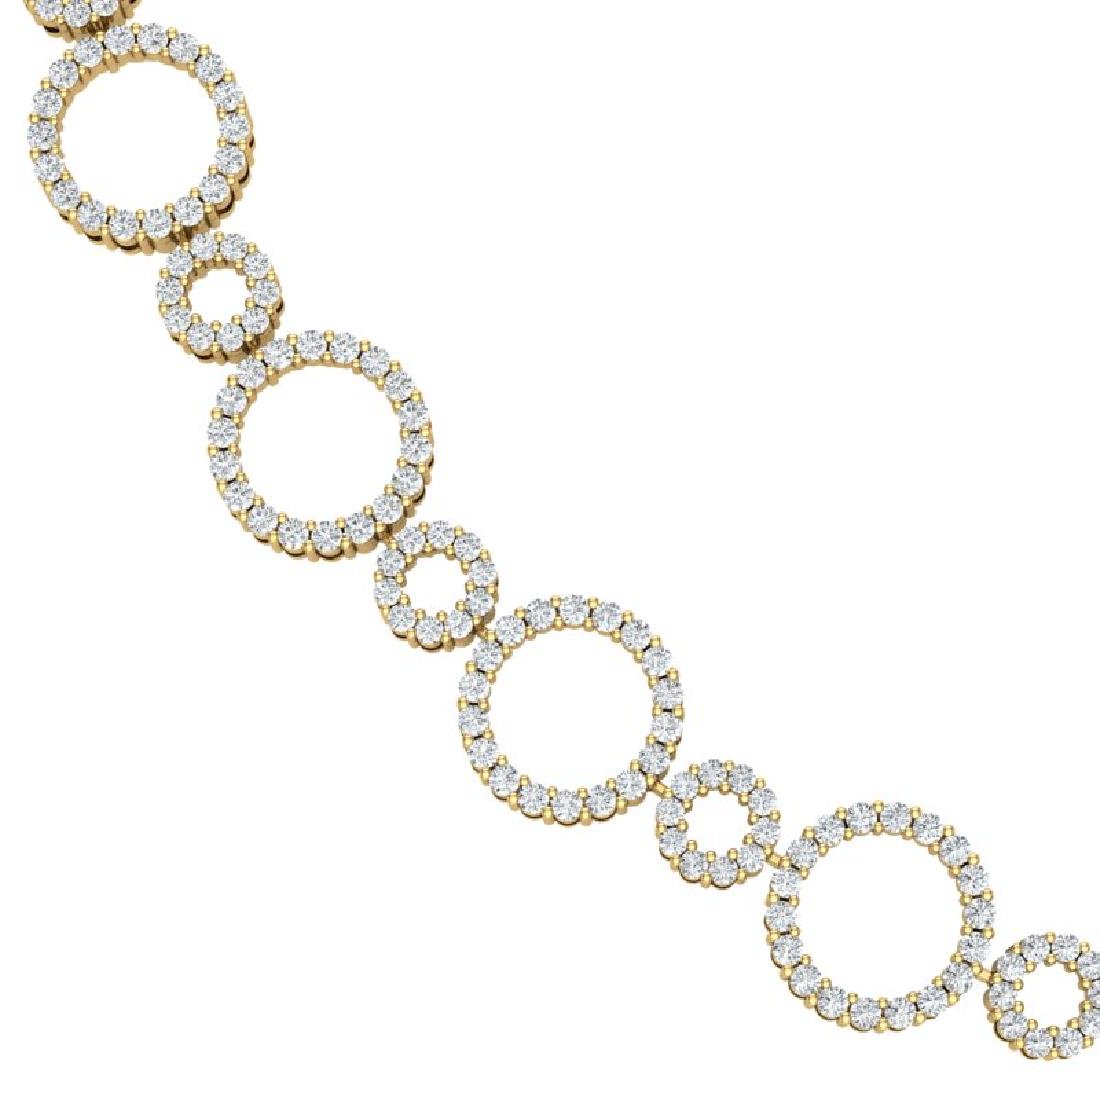 10 CTW Certified SI/I Diamond Halo Necklace 18K Yellow - 2